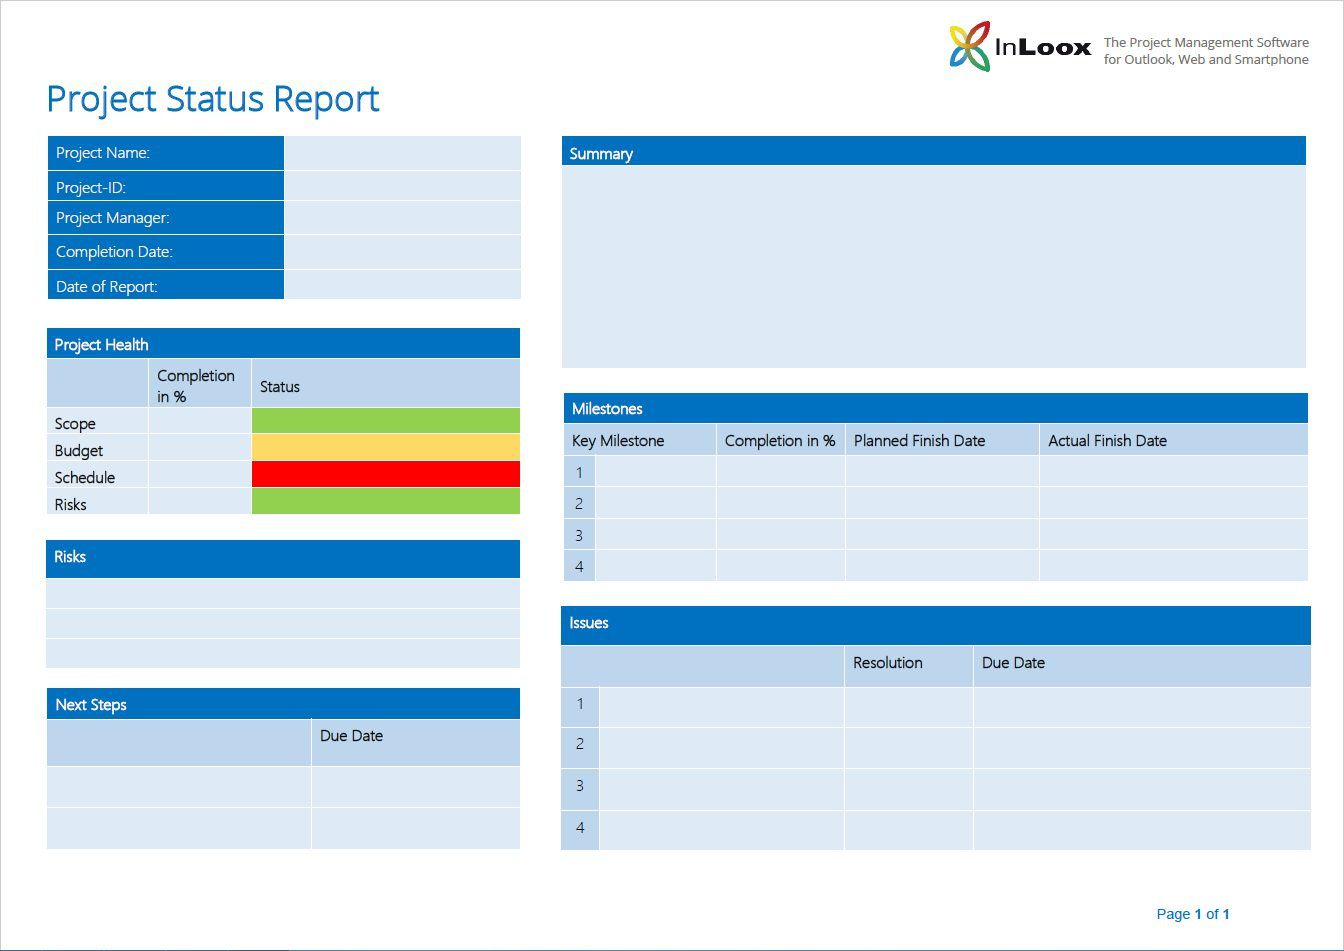 005 Top Project Management Progres Report Template Highest Clarity  Statu Ppt WeeklyFull